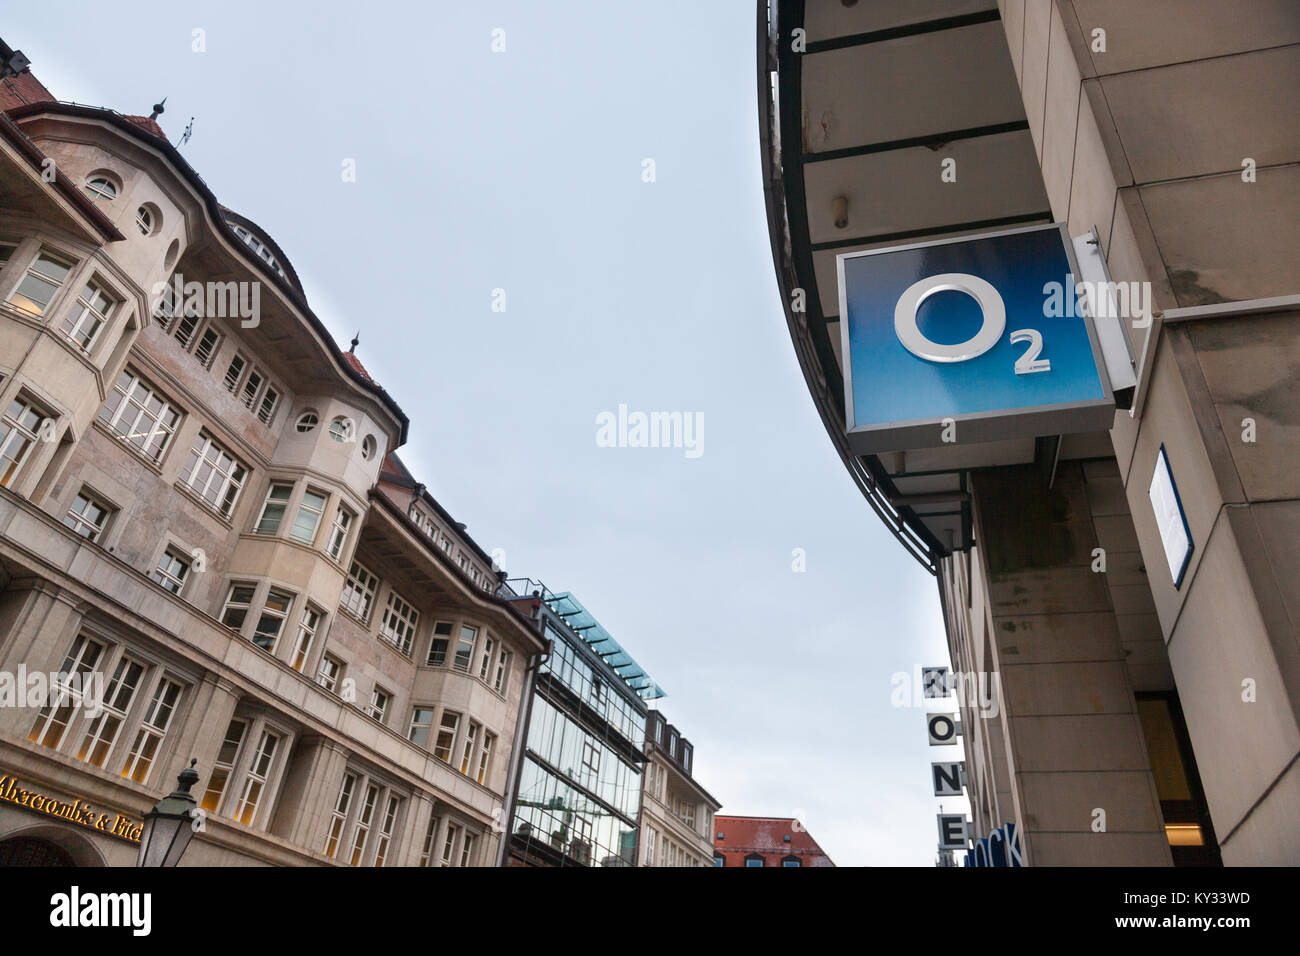 MUNICH, GERMANY - DECEMBER 18, 2017: O2 logo on their Munich main shop. O2 is one of the main phone carriers and - Stock Image